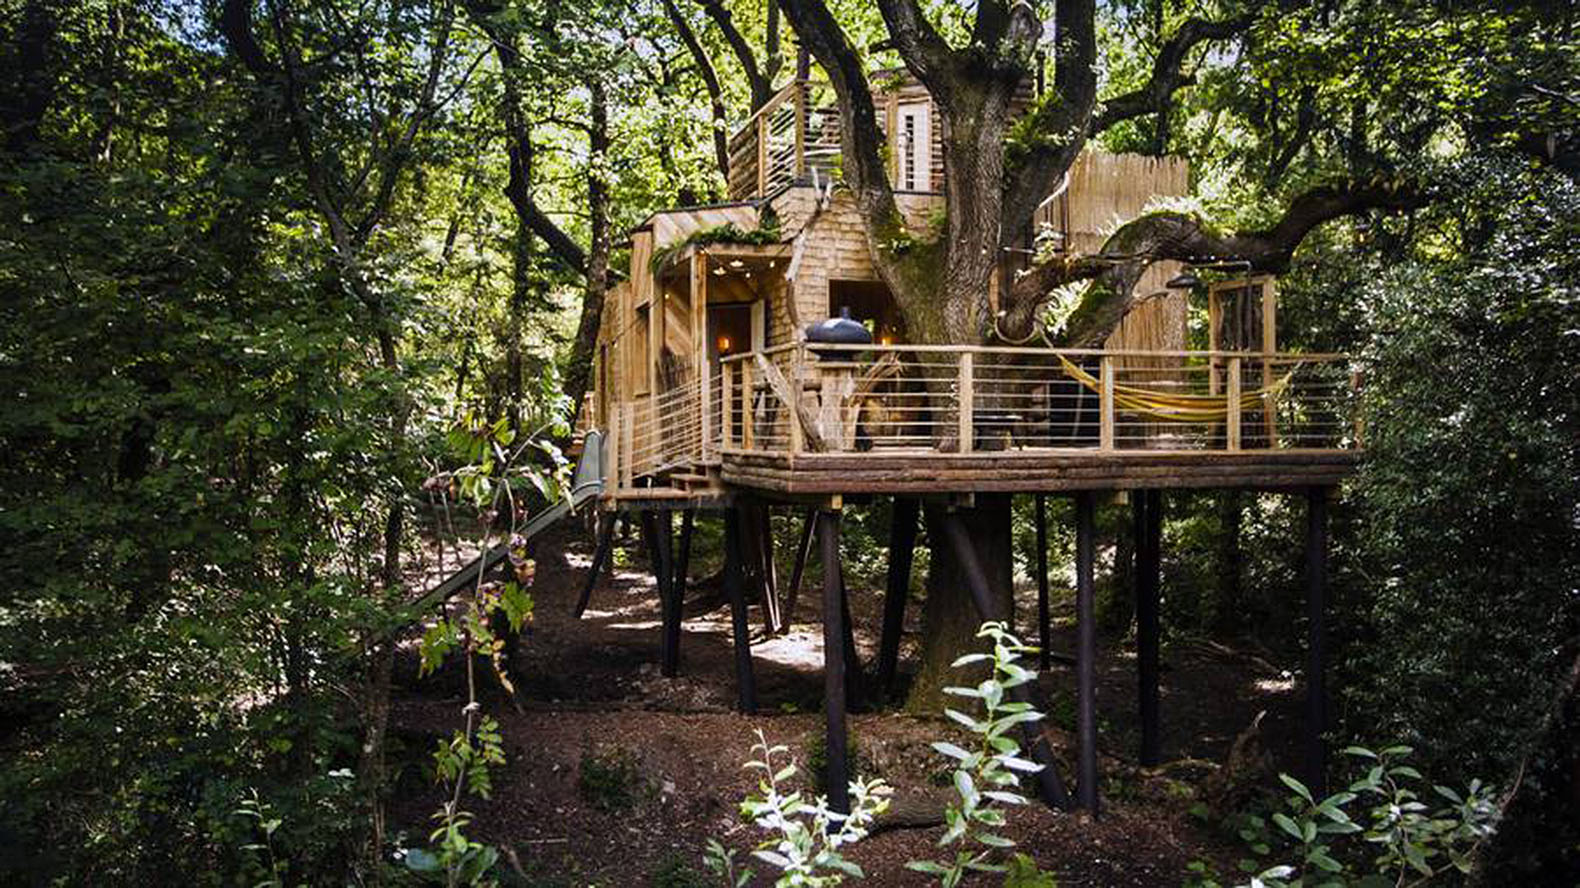 Beautiful Woodman S Treehouse In England Combines Traditional Craftsmanship And Luxury Design